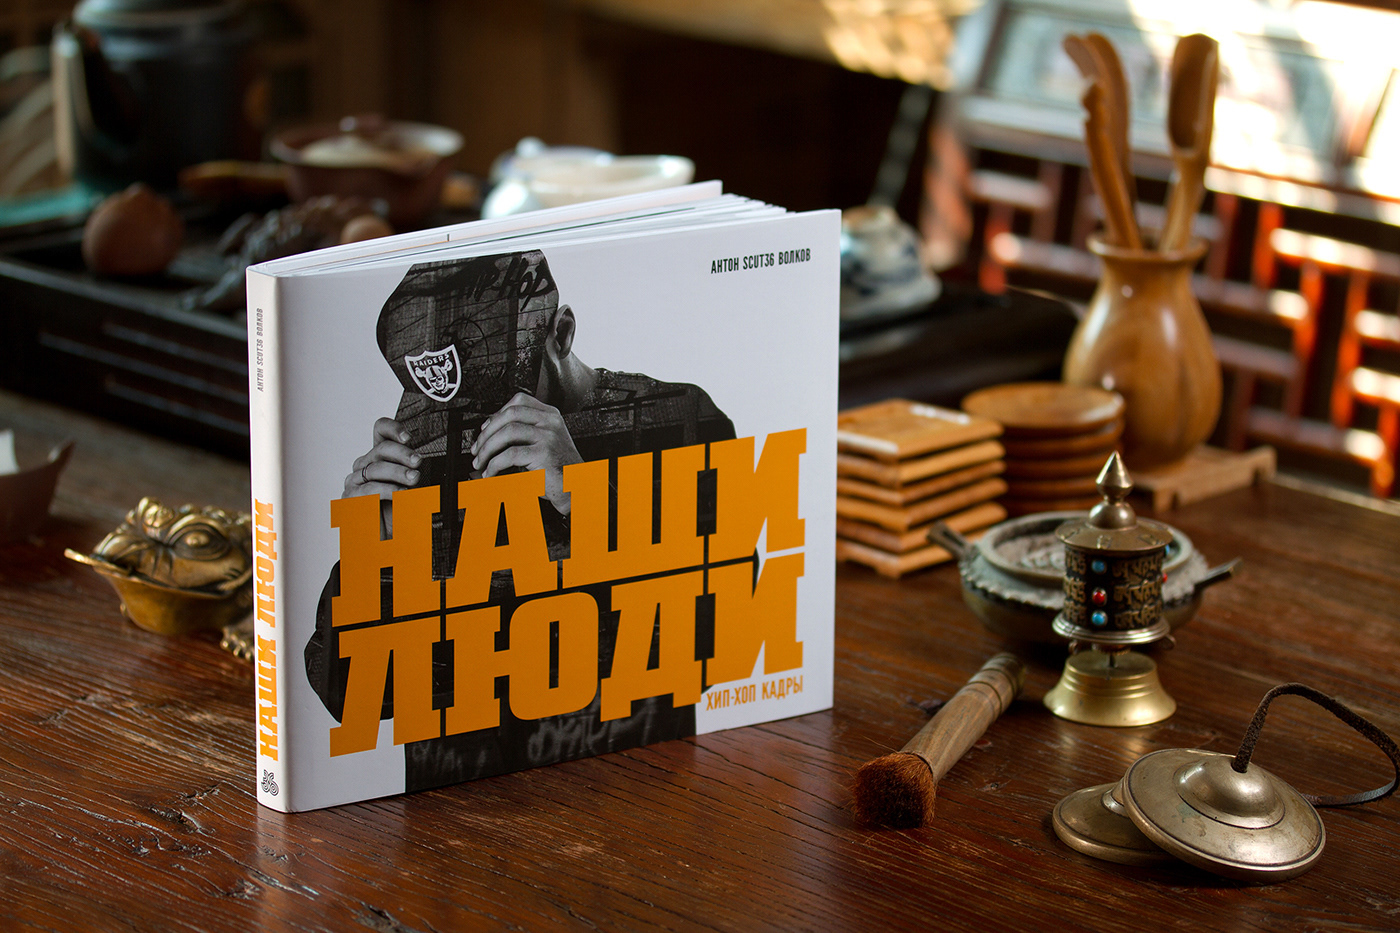 Russian hip hop photobook cover